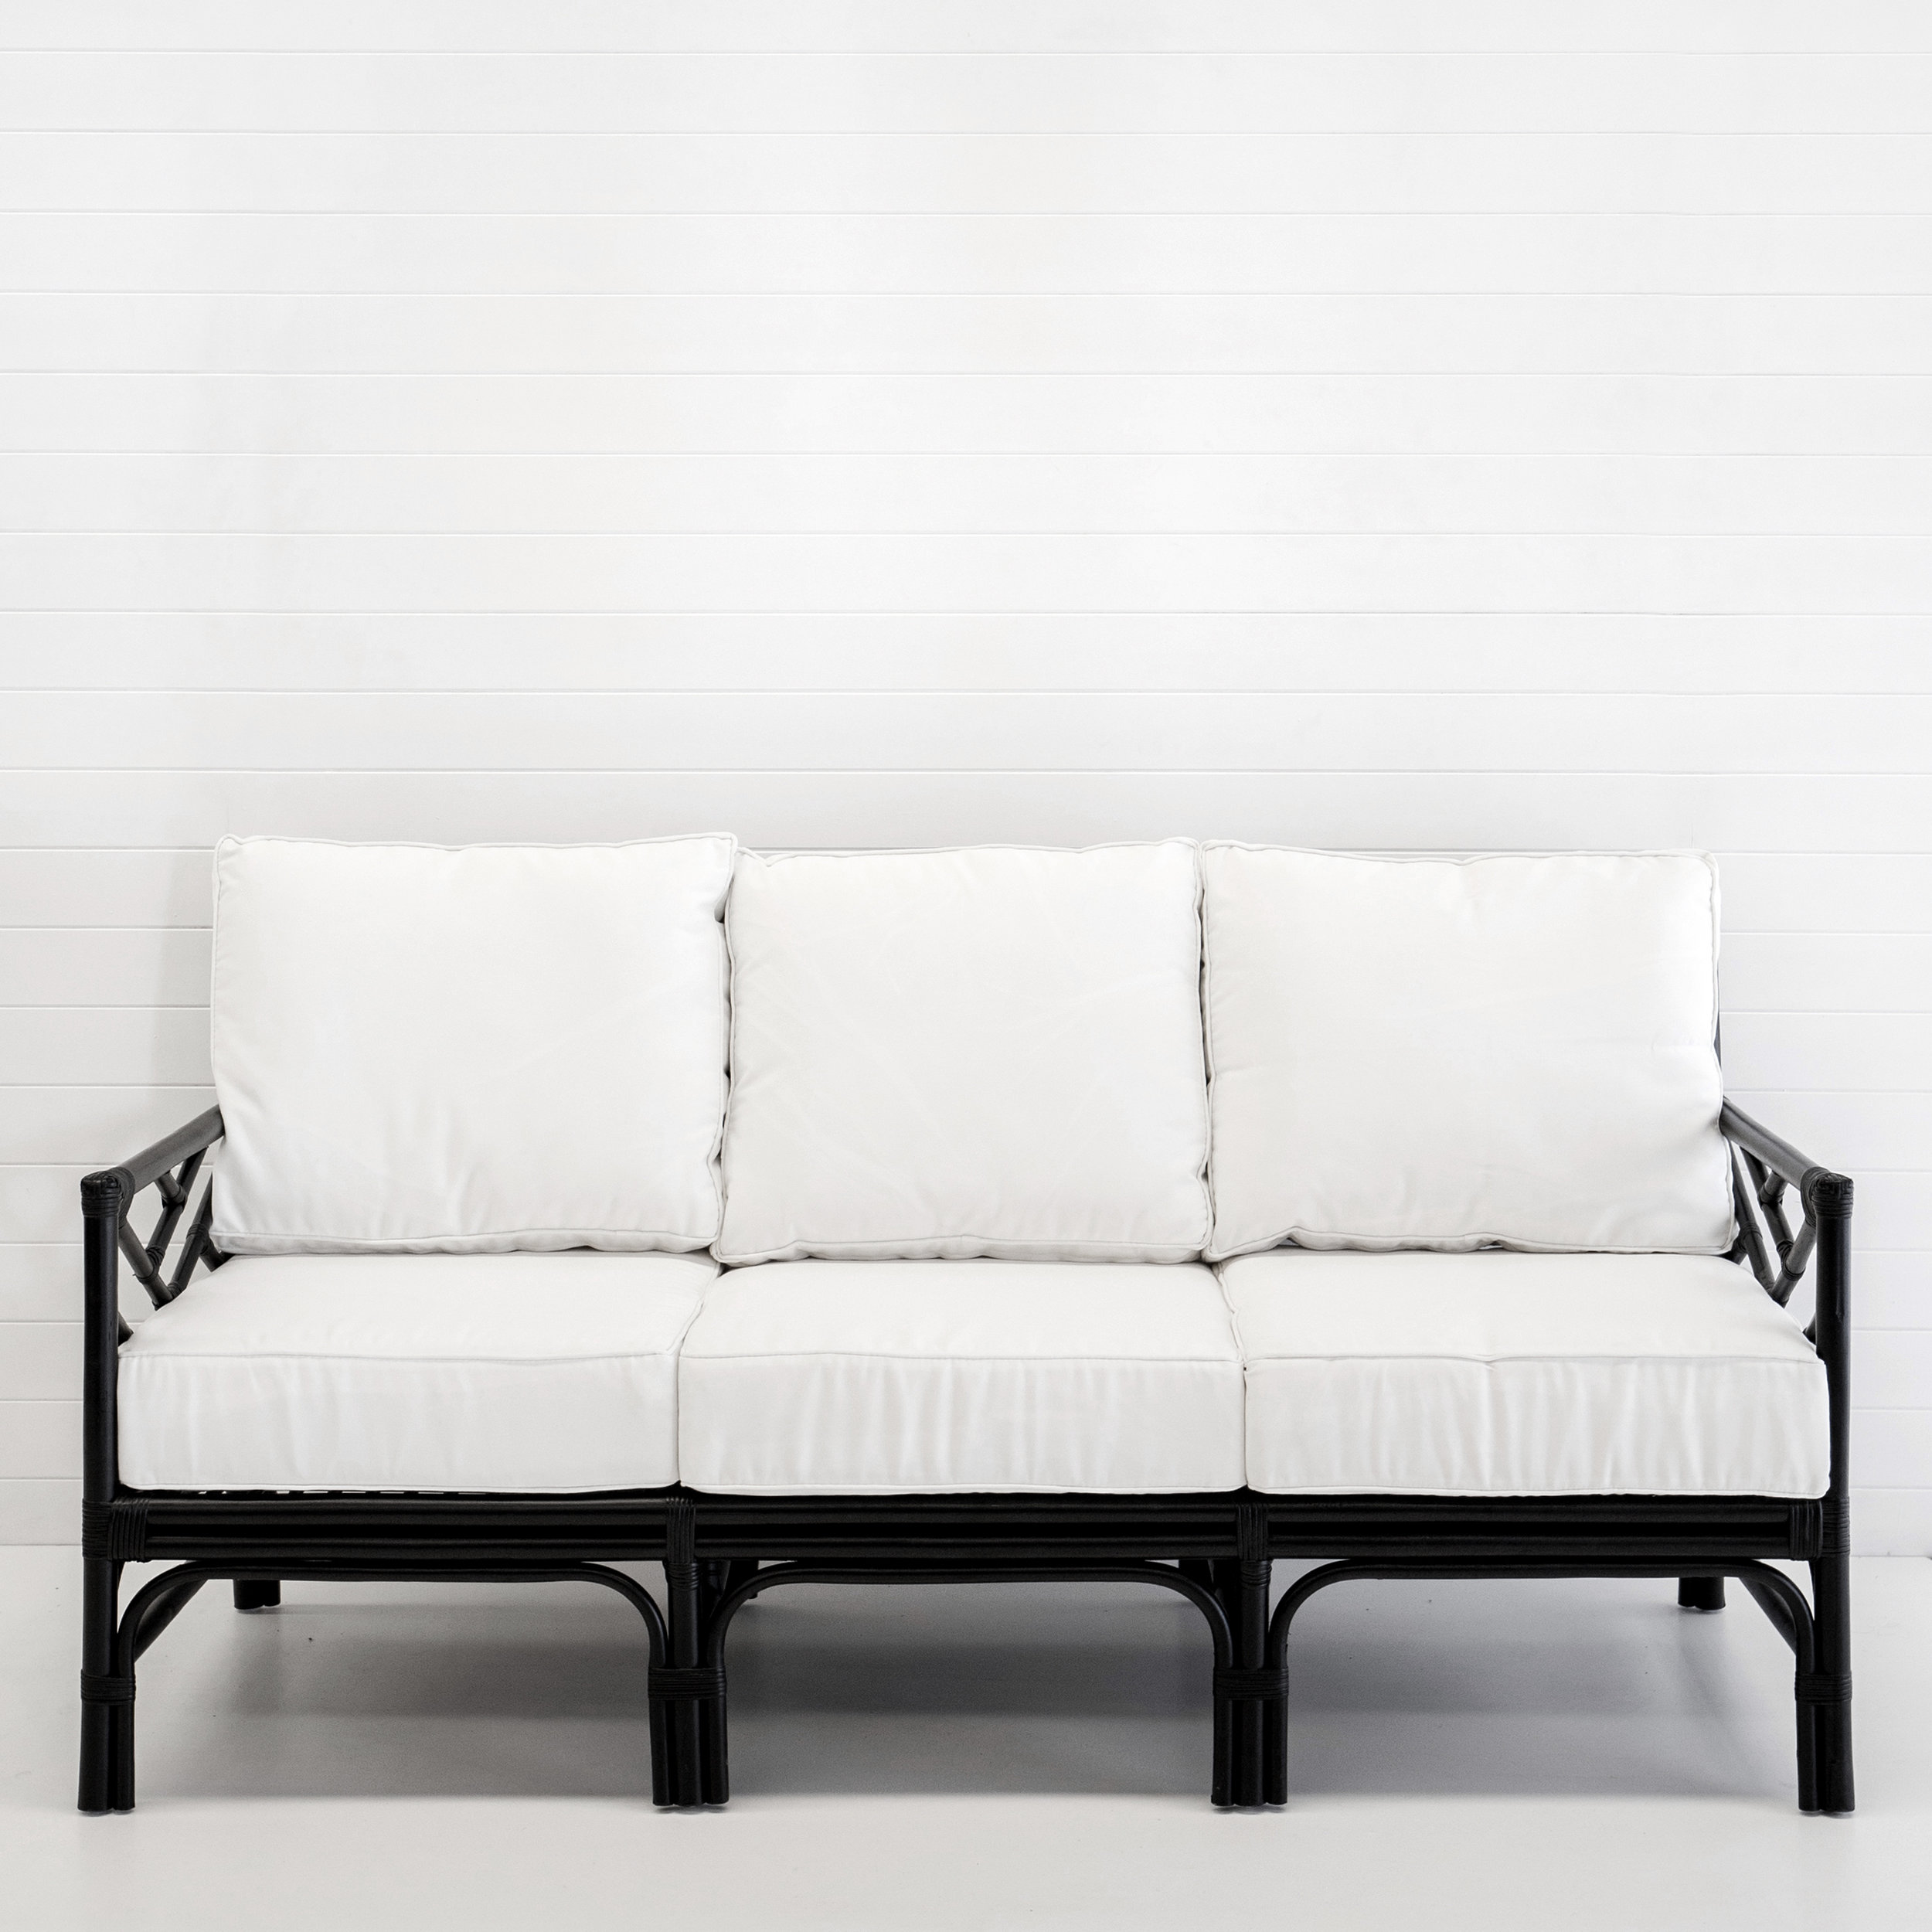 Hamptons black 3-seater sofa with white cushions